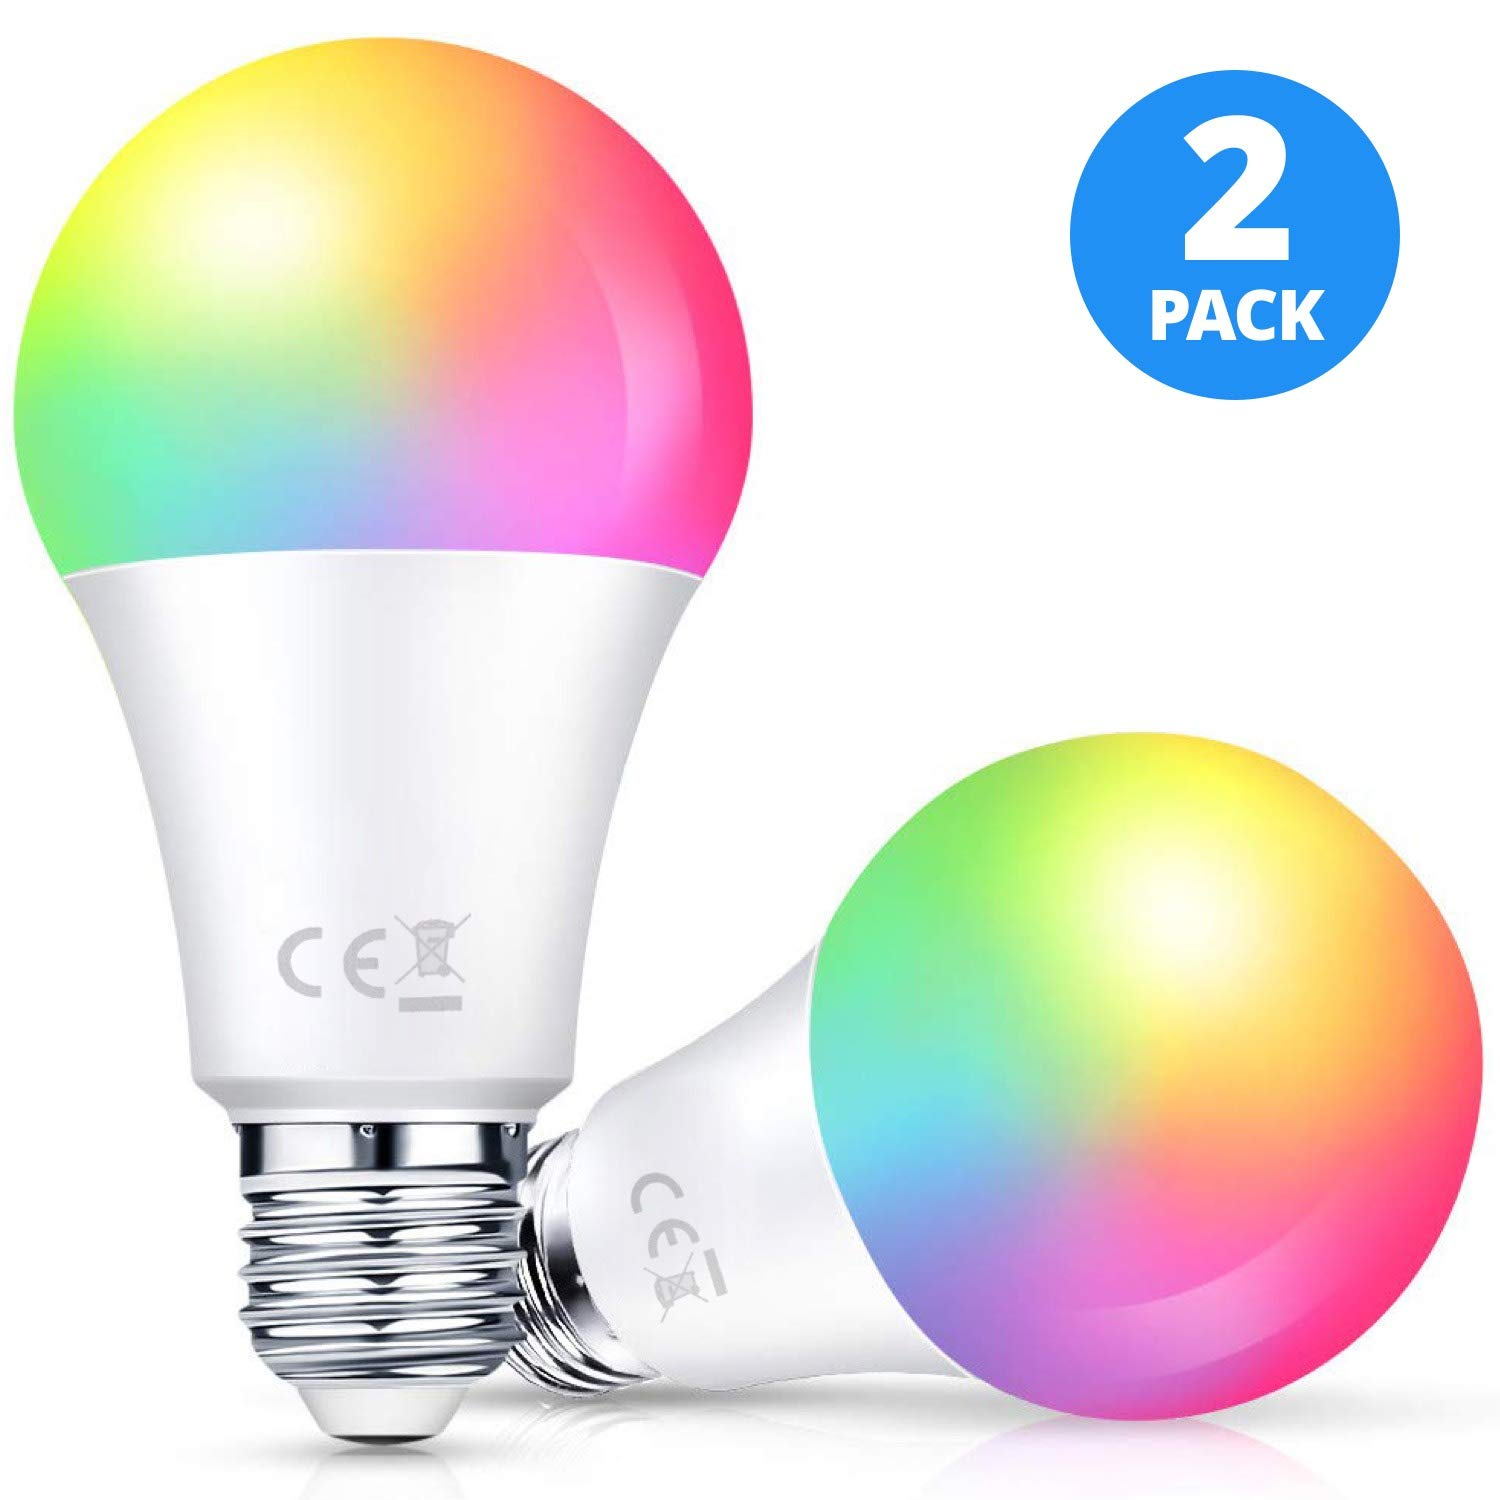 A19 E26 Base Type Dimmable Multicolored RGBW 10W Smart WiFi LED Light Bulb 2 Pack Work with Alexa /& Google Assistant 85W Equivalent No Hub Required